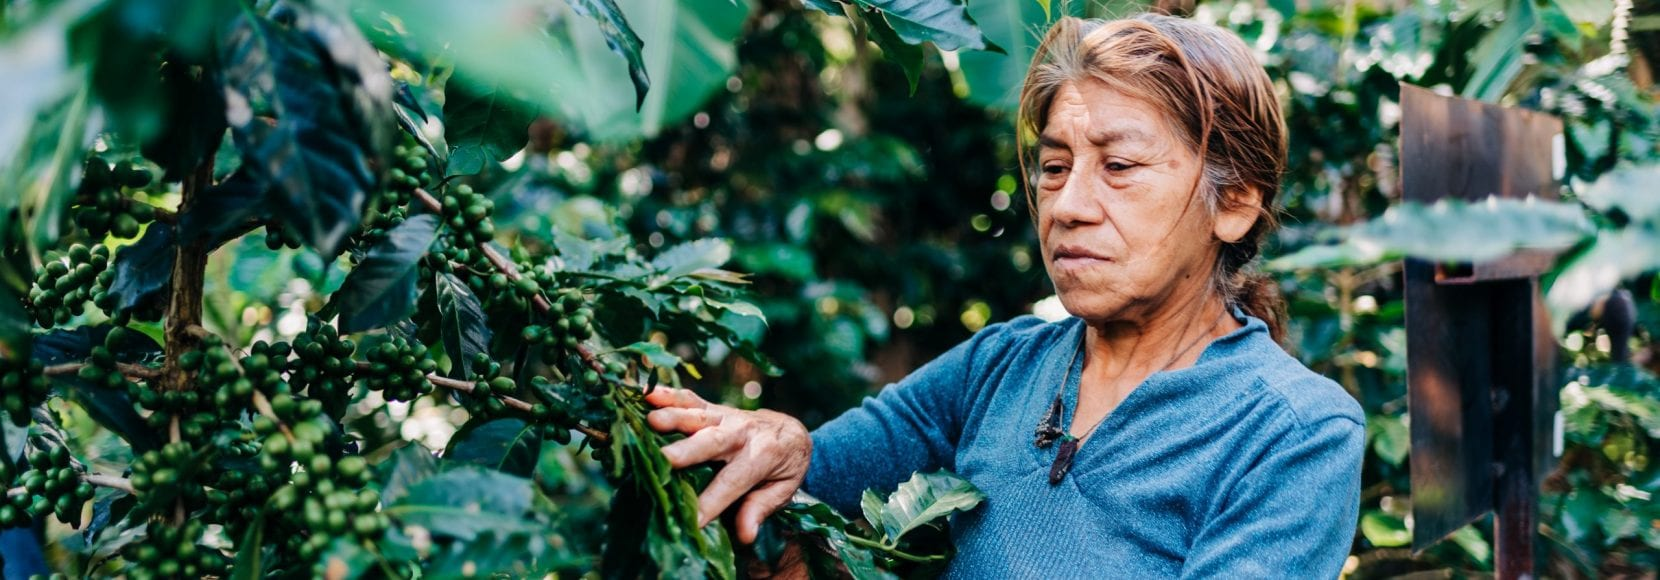 Woman picking coffee beans off the vine